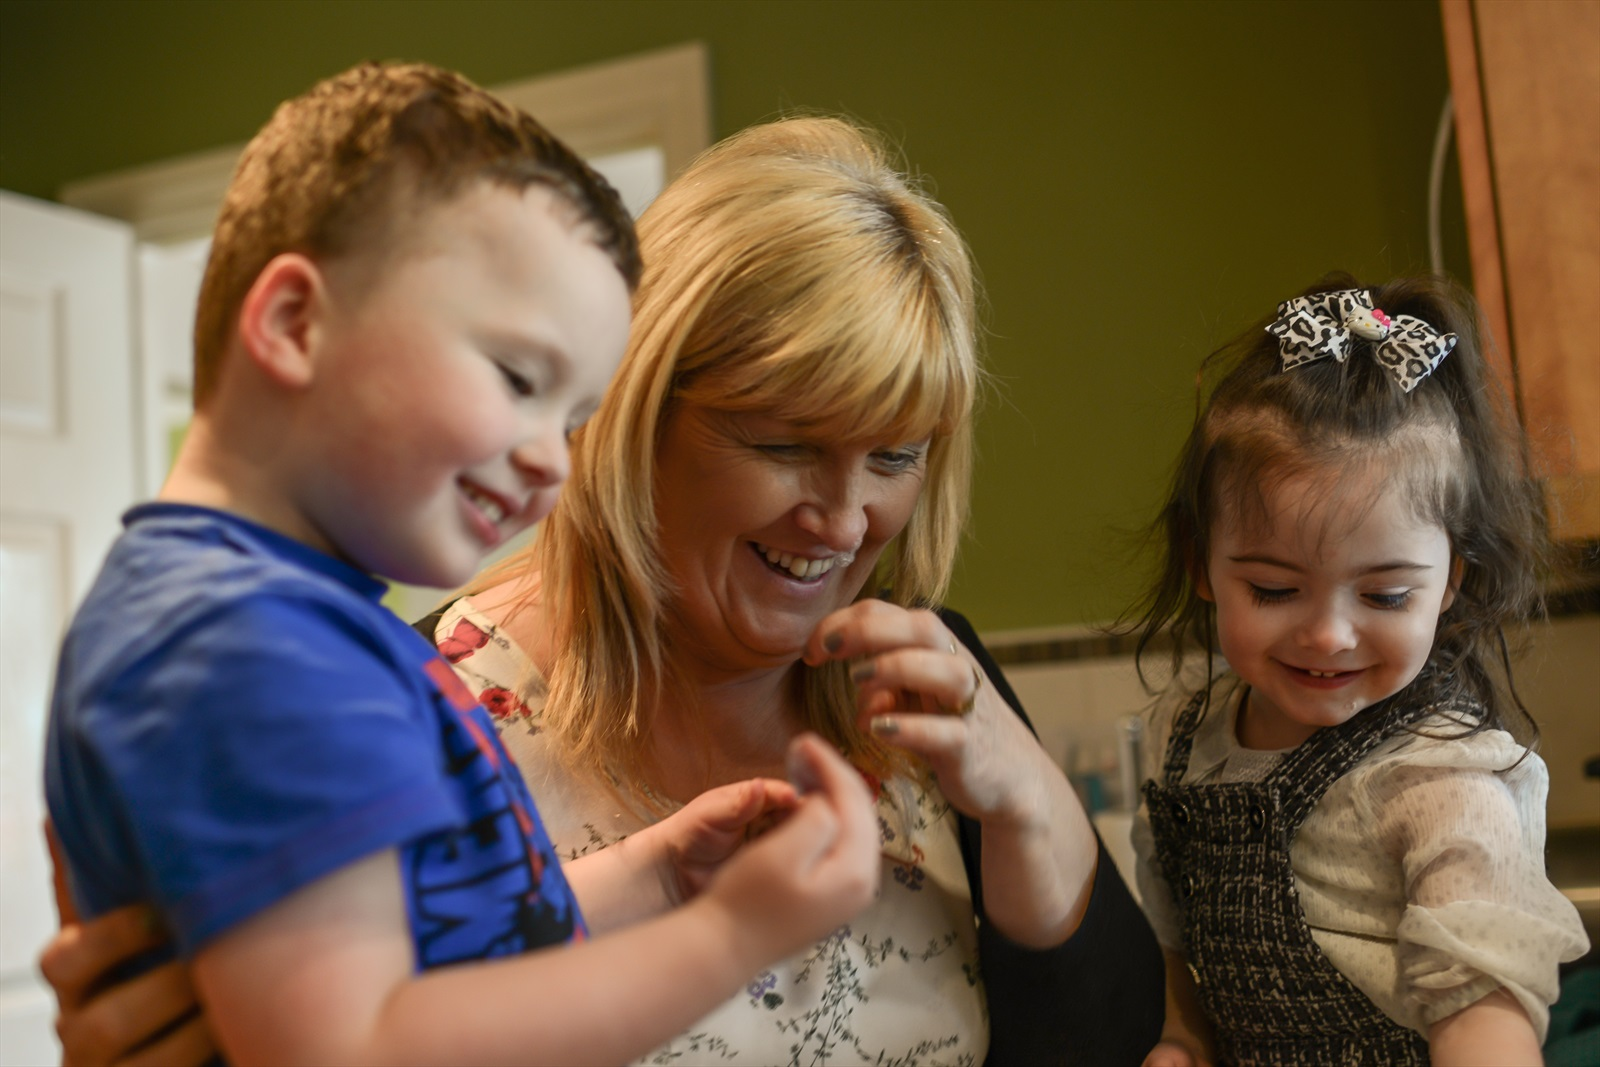 Care Inspectorate publish a Review of Care Services for Early Learning and Childcare